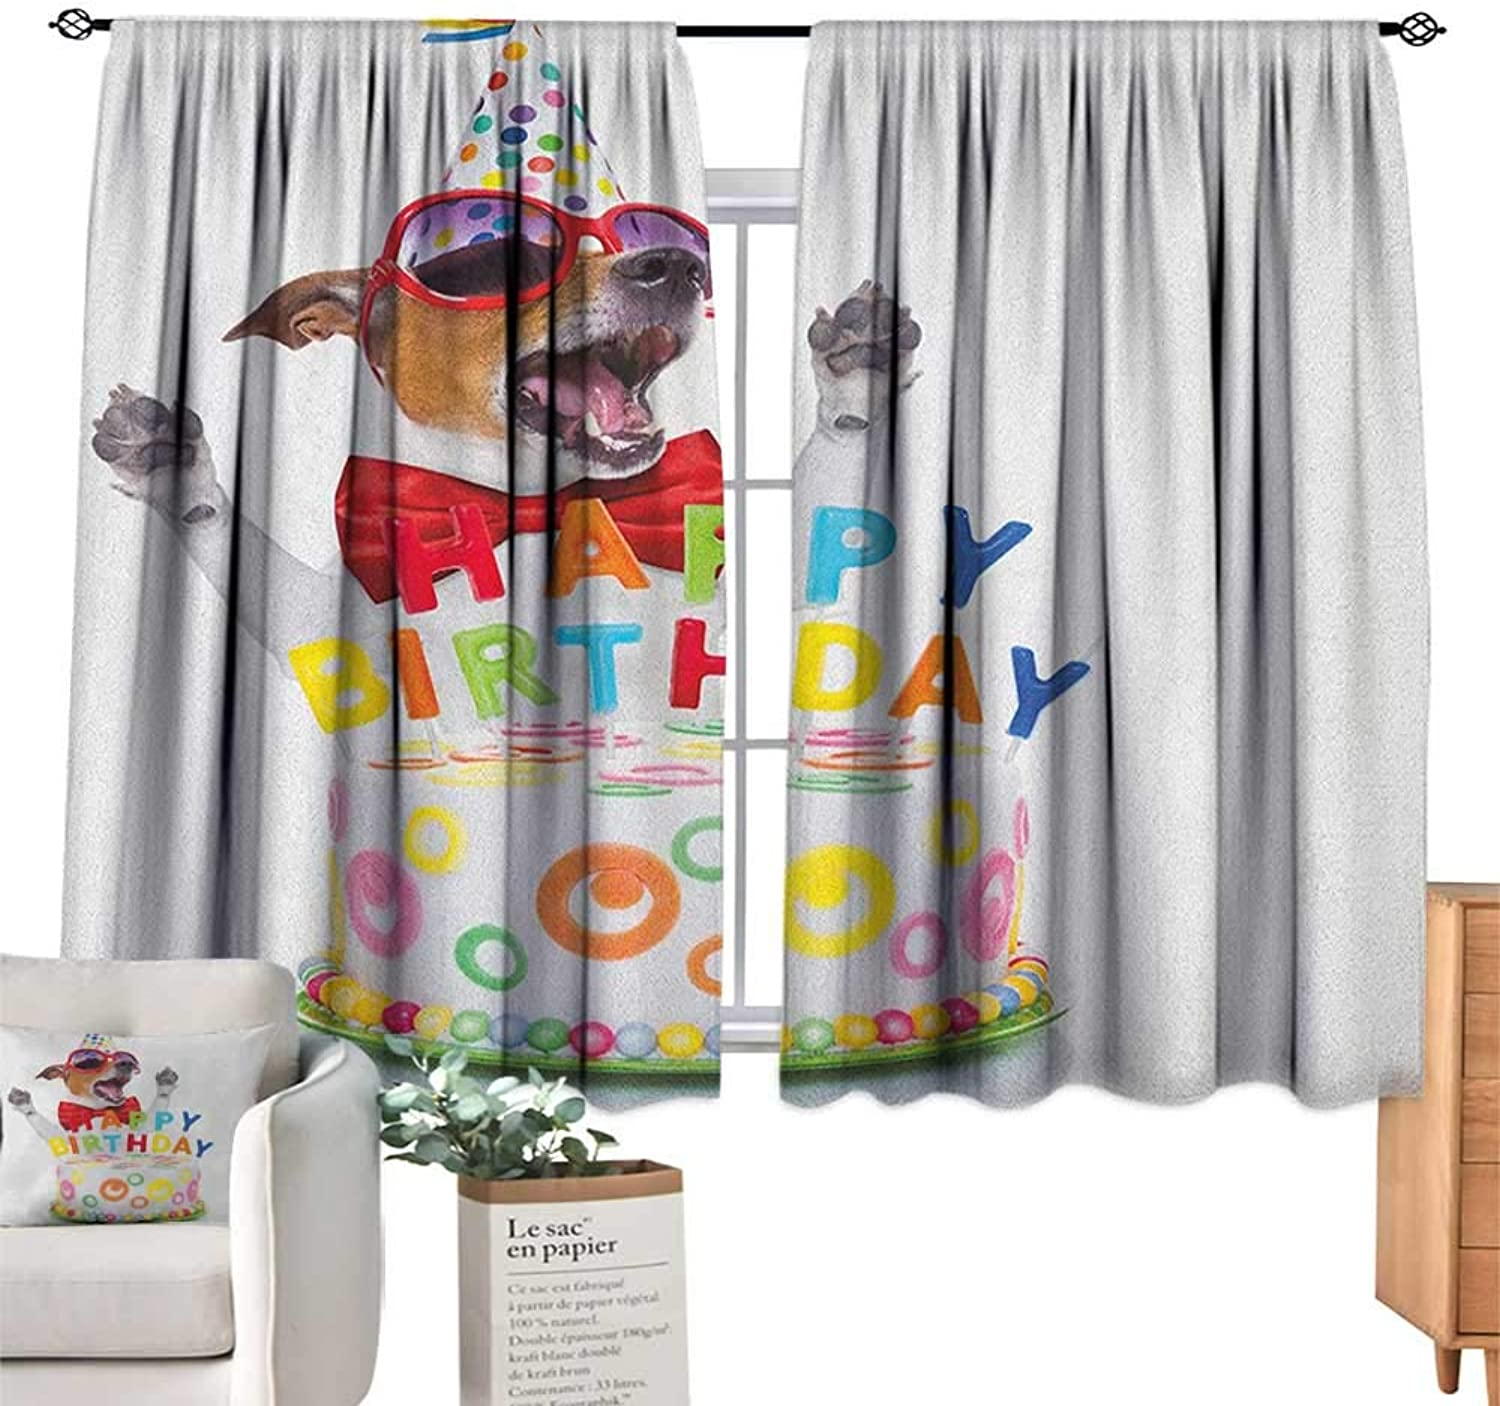 Familytaste Kids Birthday,Blackout Curtains Party Dog at Suprise Birthday Party with Cone Hat and Glasses Photograph Fun Indoor Wall Curtain Decorations W63 x L45